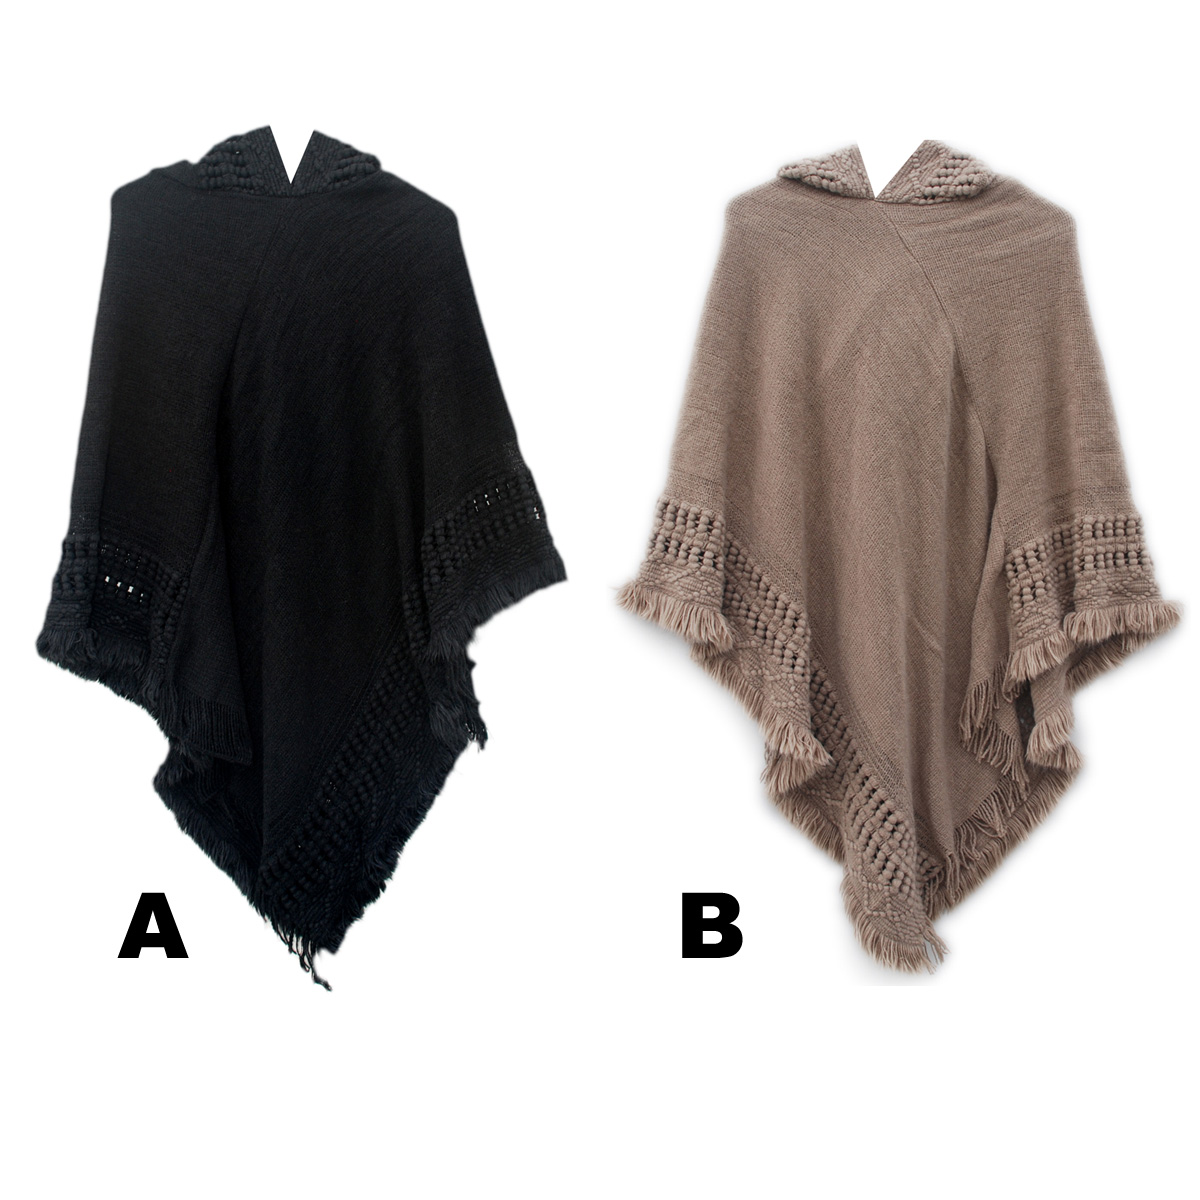 Hooded Poncho Pattern Best Design Ideas